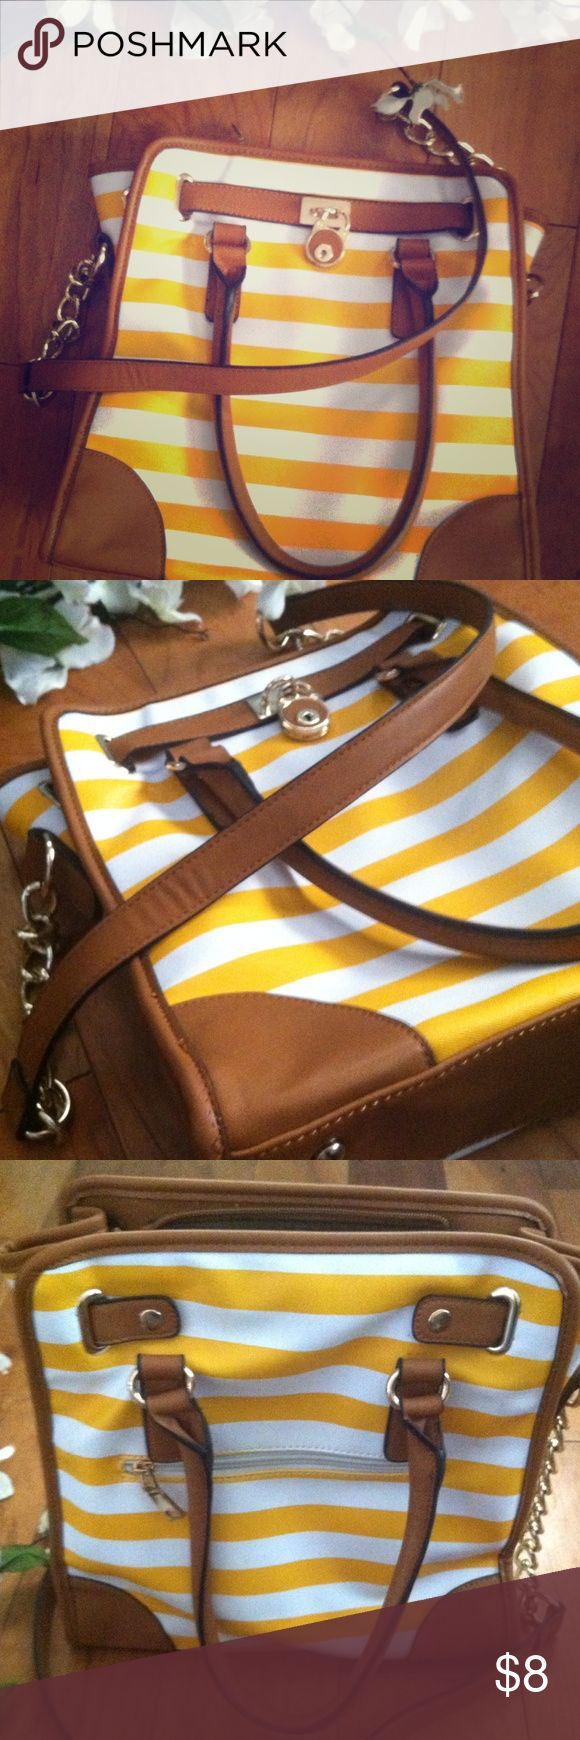 Yellow and White Striped Shoulder Bag Cute white and yellow striped shoulder bag. No brand. It has a flaw on the strap where it sits on your shoulder (see 4th picture). Make me an offer! Bags Shoulder Bags